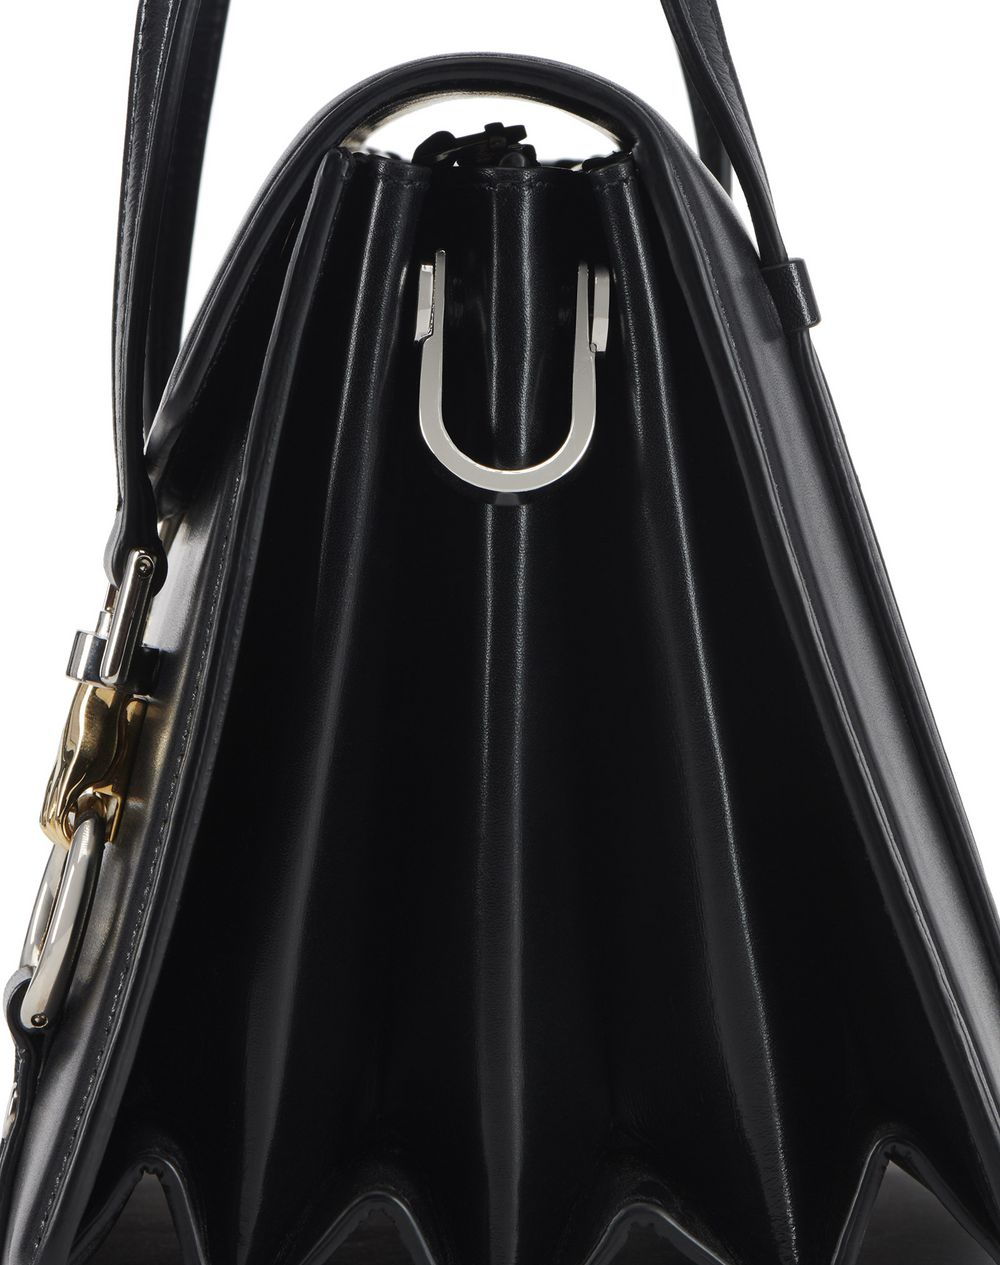 KNOCK BAG - Lanvin